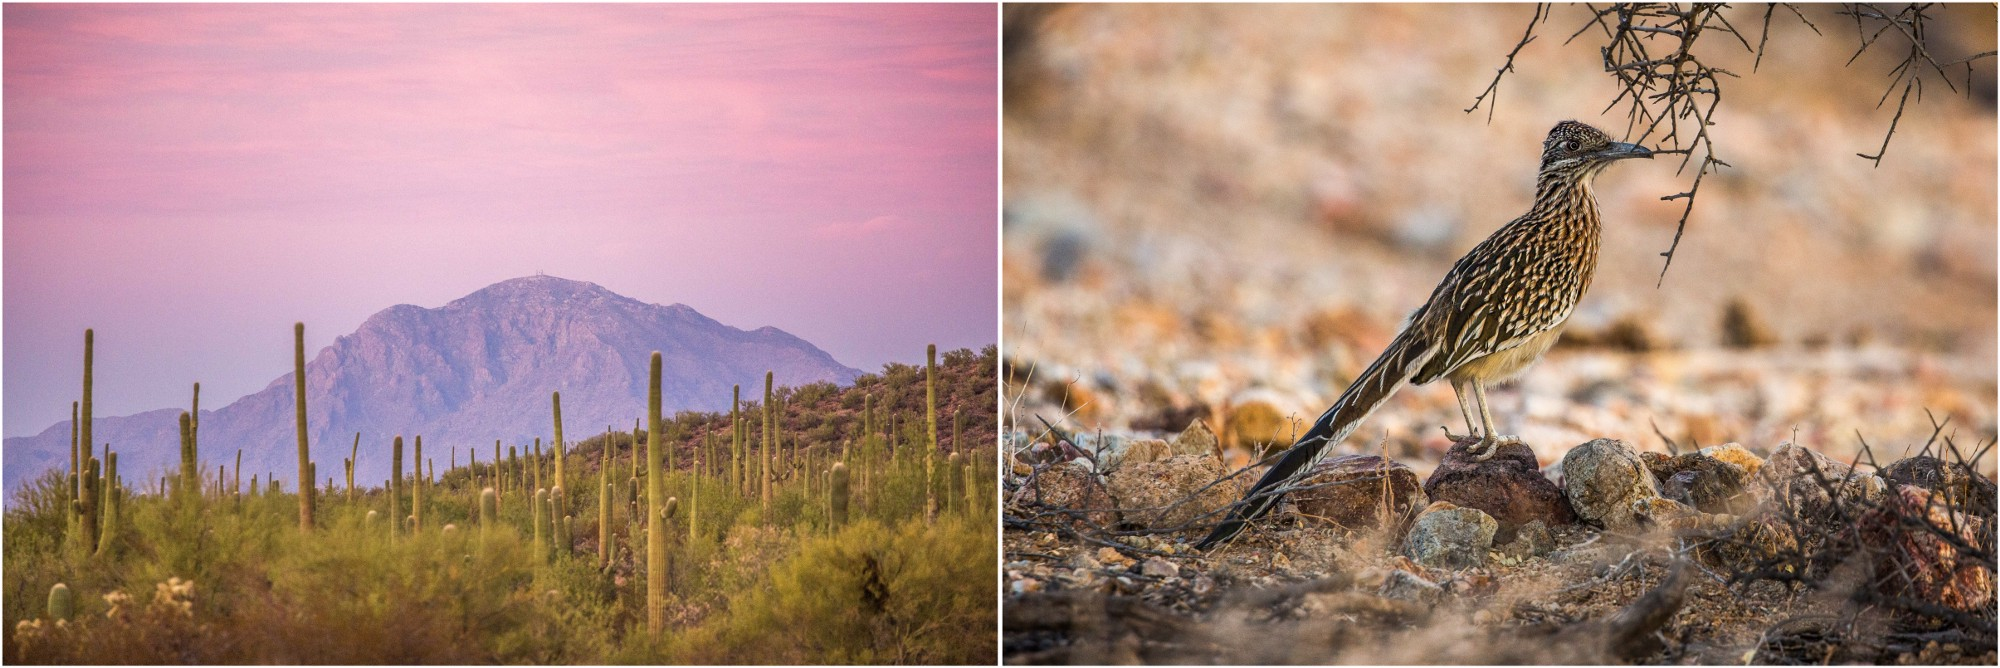 - Left: In the pink light of sunset in Ironwood Forest National Monument, saguaro cacti and ironwoods stretch across a vast landscape. Right: A roadrunner on the side of the dirt road.